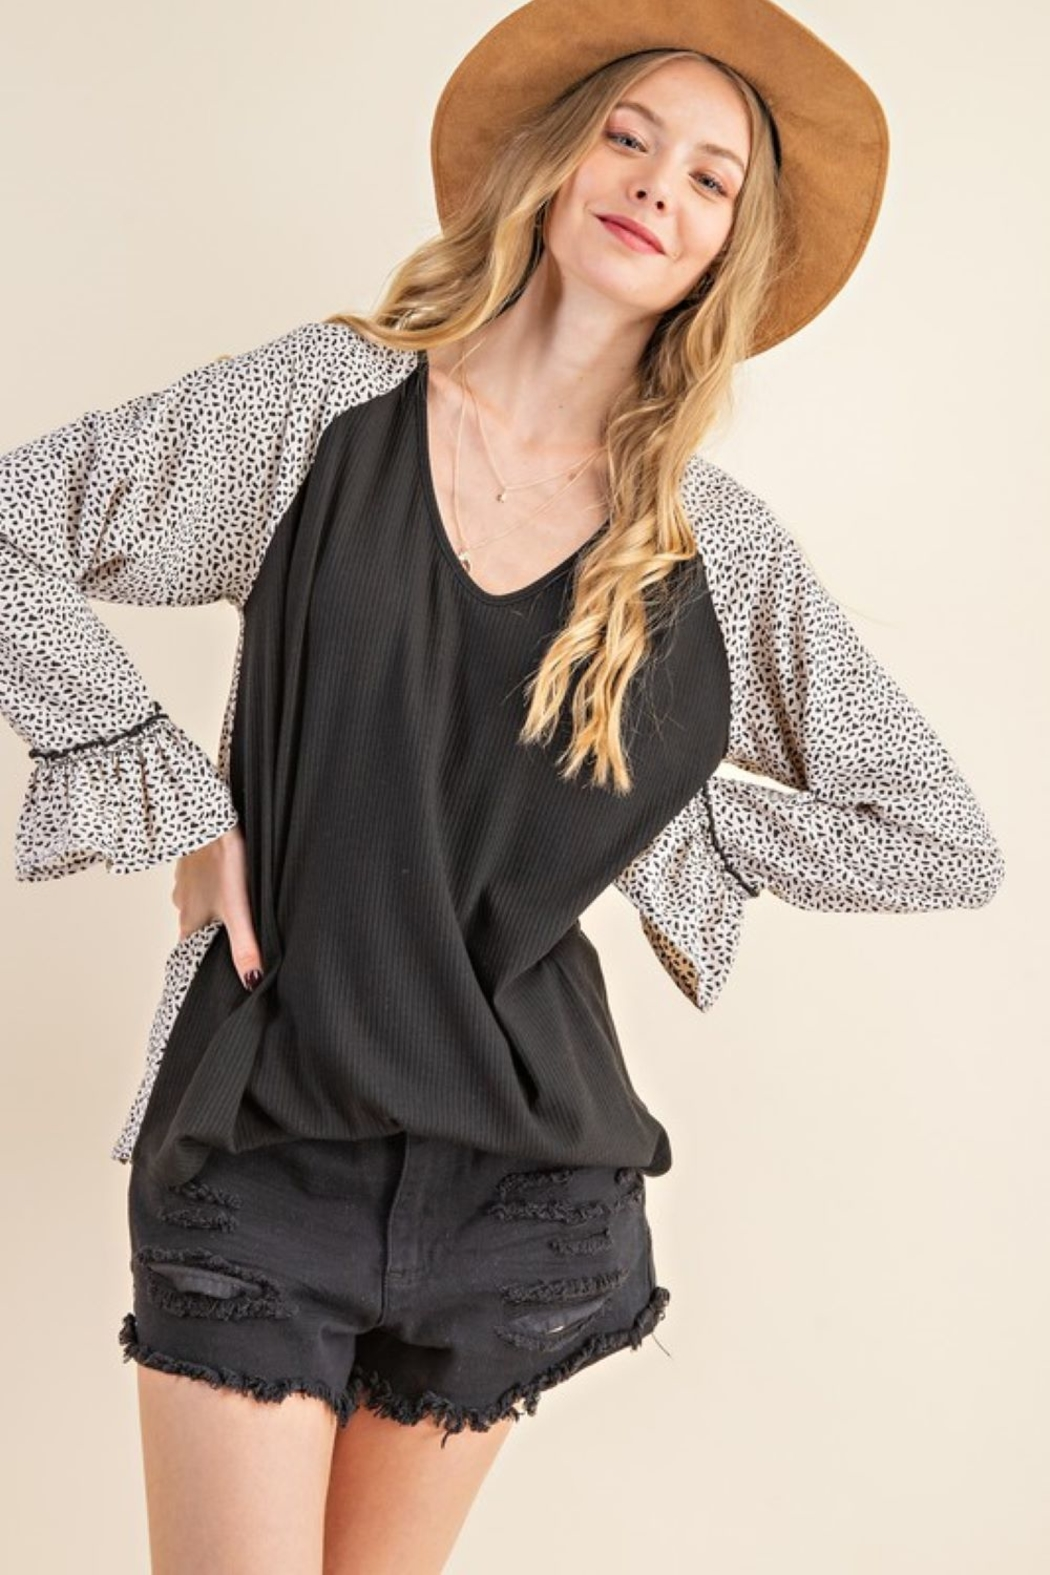 143 Story Leopard Contrast Top with Ruffle Sleeve - Main Image